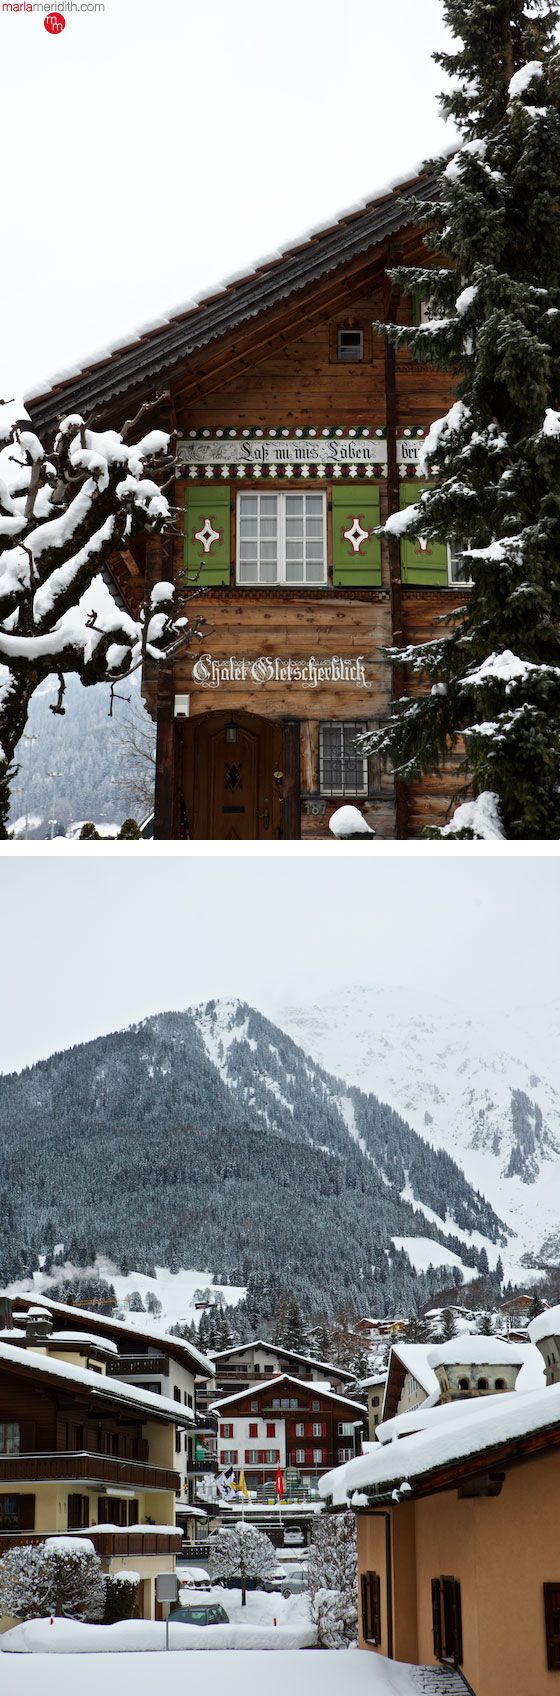 Davos & Klosters, Switzerland with Alpenglow Ski Safaris | An off-piste trip of a lifetime! MarlaMeridith.com